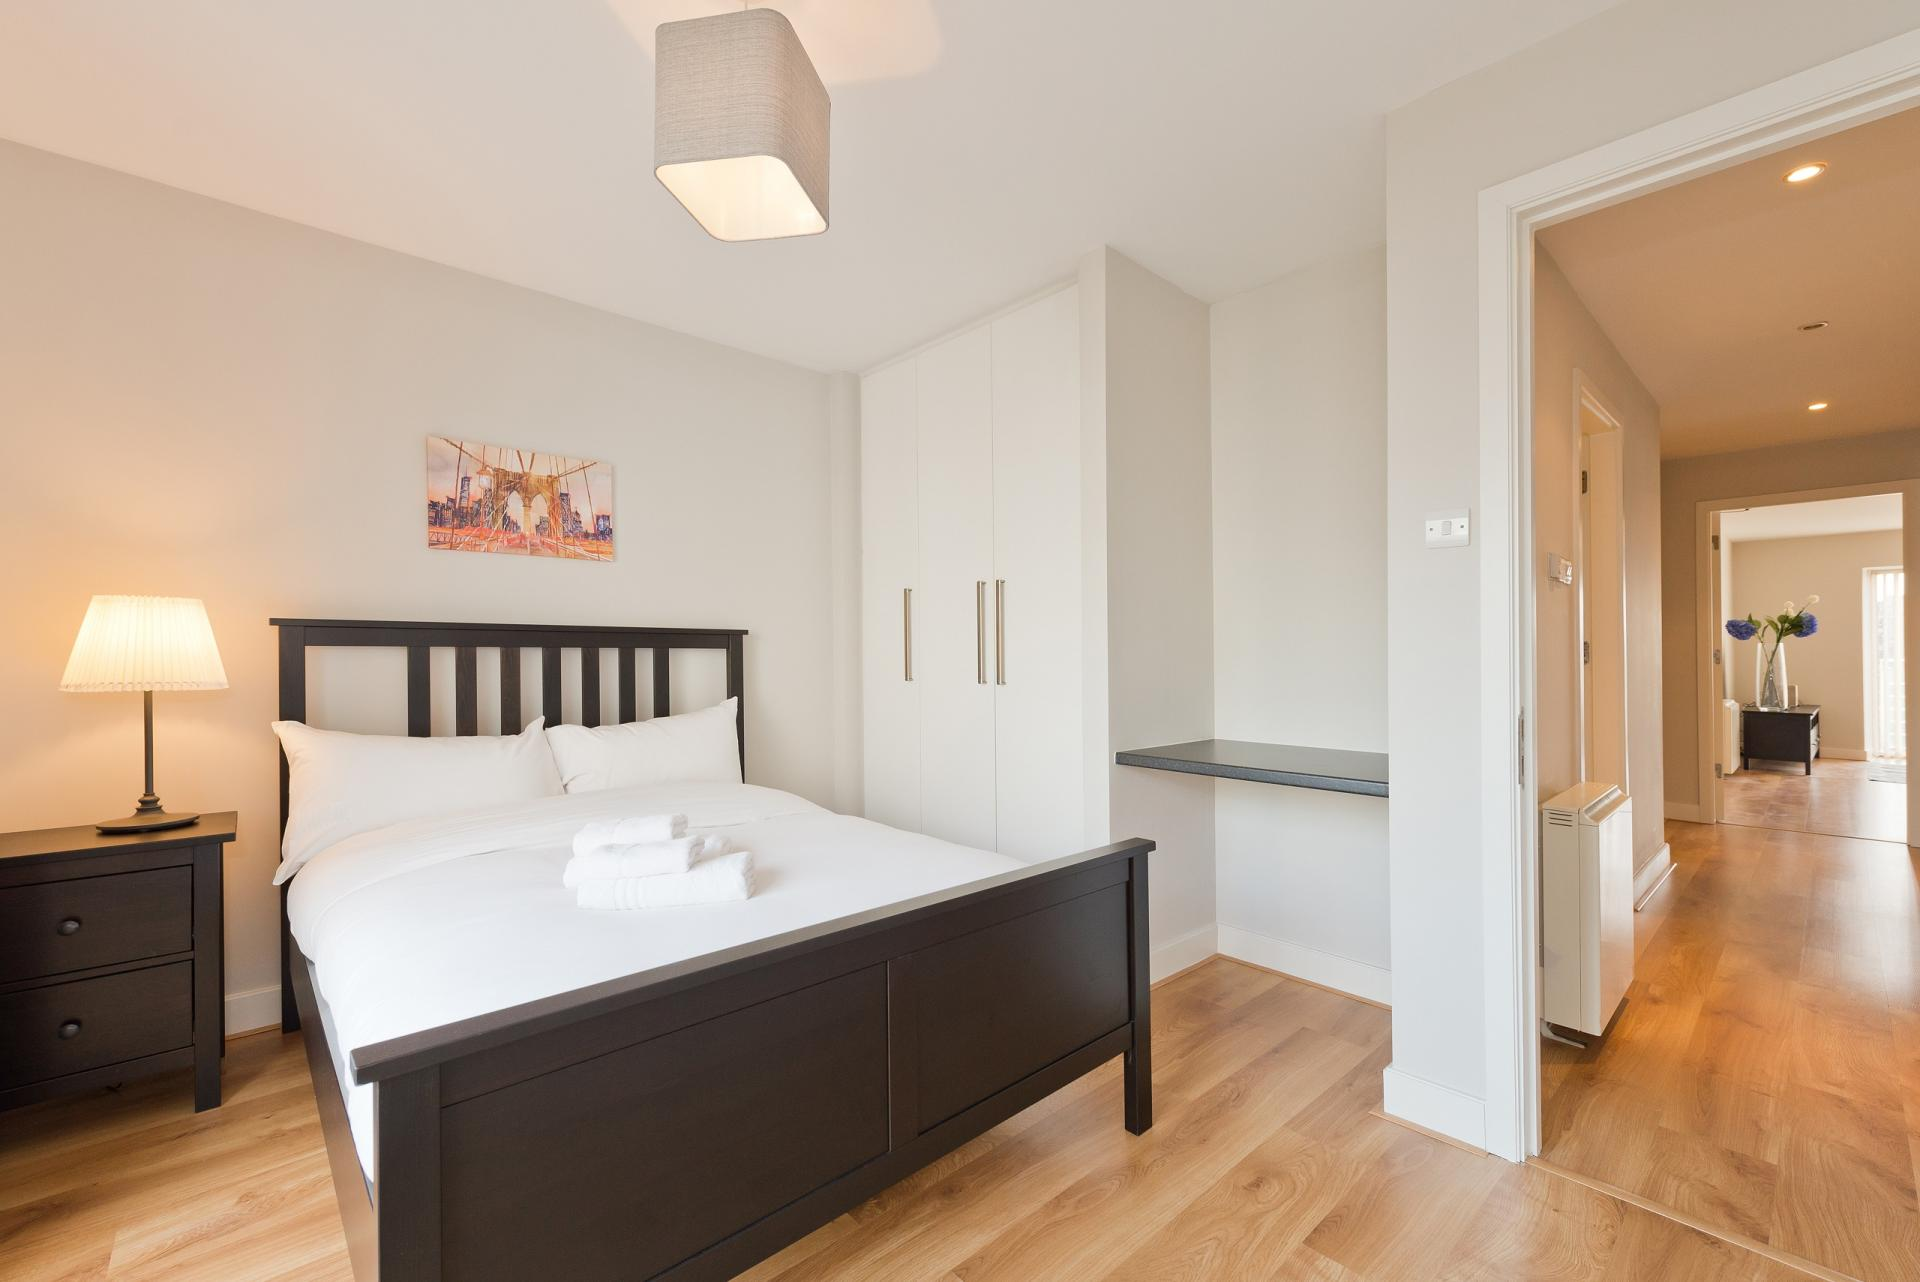 Guest bedroom at Grand Canal Square 16 Apartment, Beggar's Bush, Dublin - Citybase Apartments